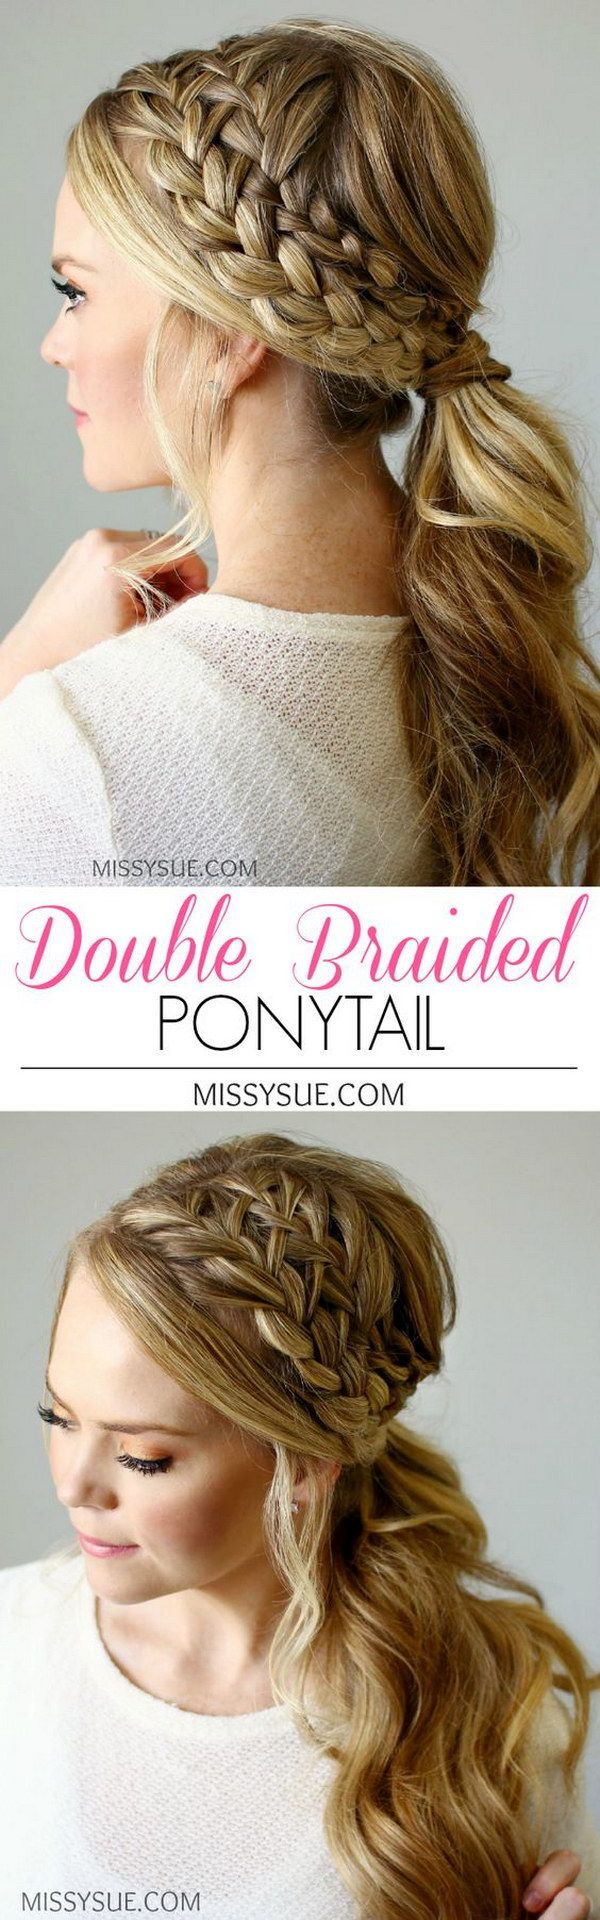 Double Braided Ponytail How To